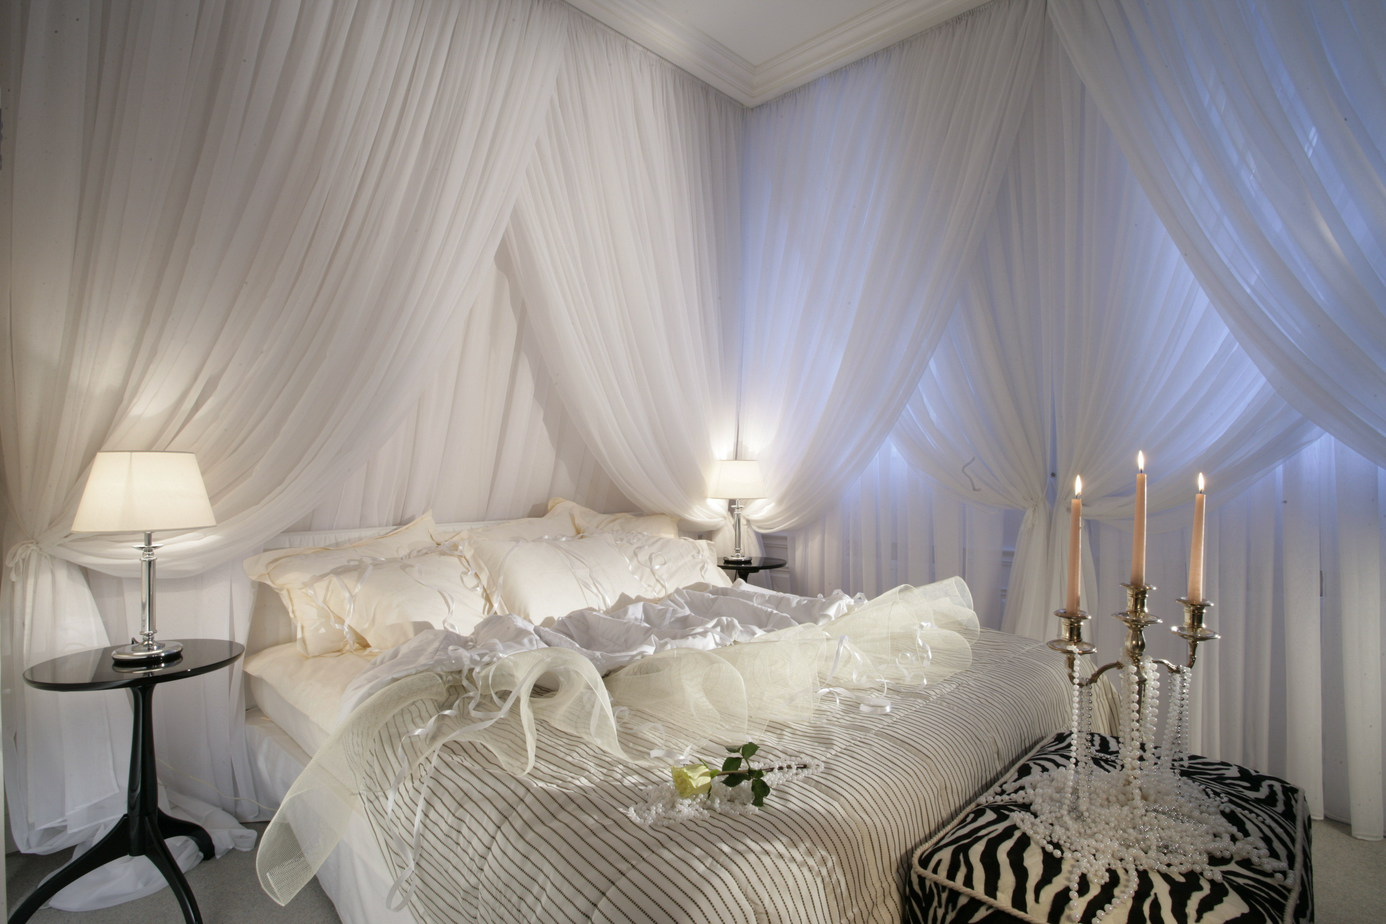 10.Beautiful in White Opt for canopy bed by Simphome.com